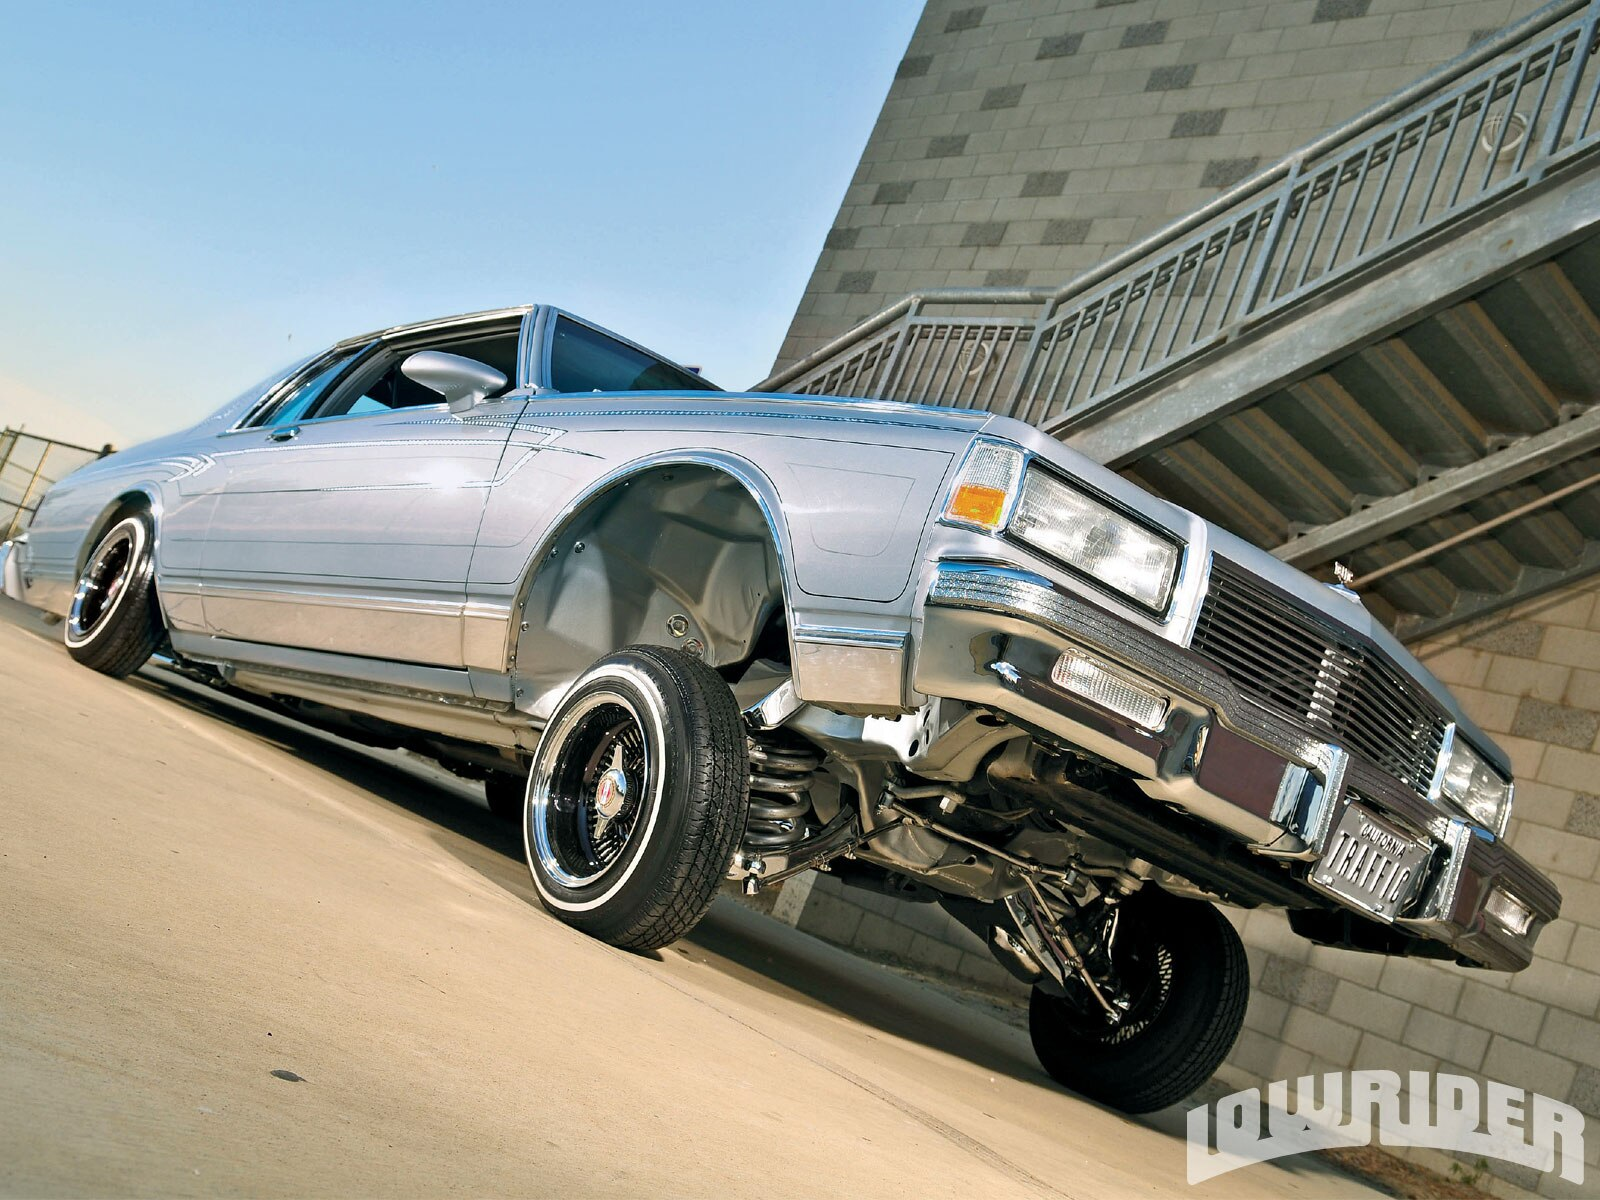 Lowrider Car Hd Wallpaper 1986 Chevrolet Caprice Lowrider Magazine